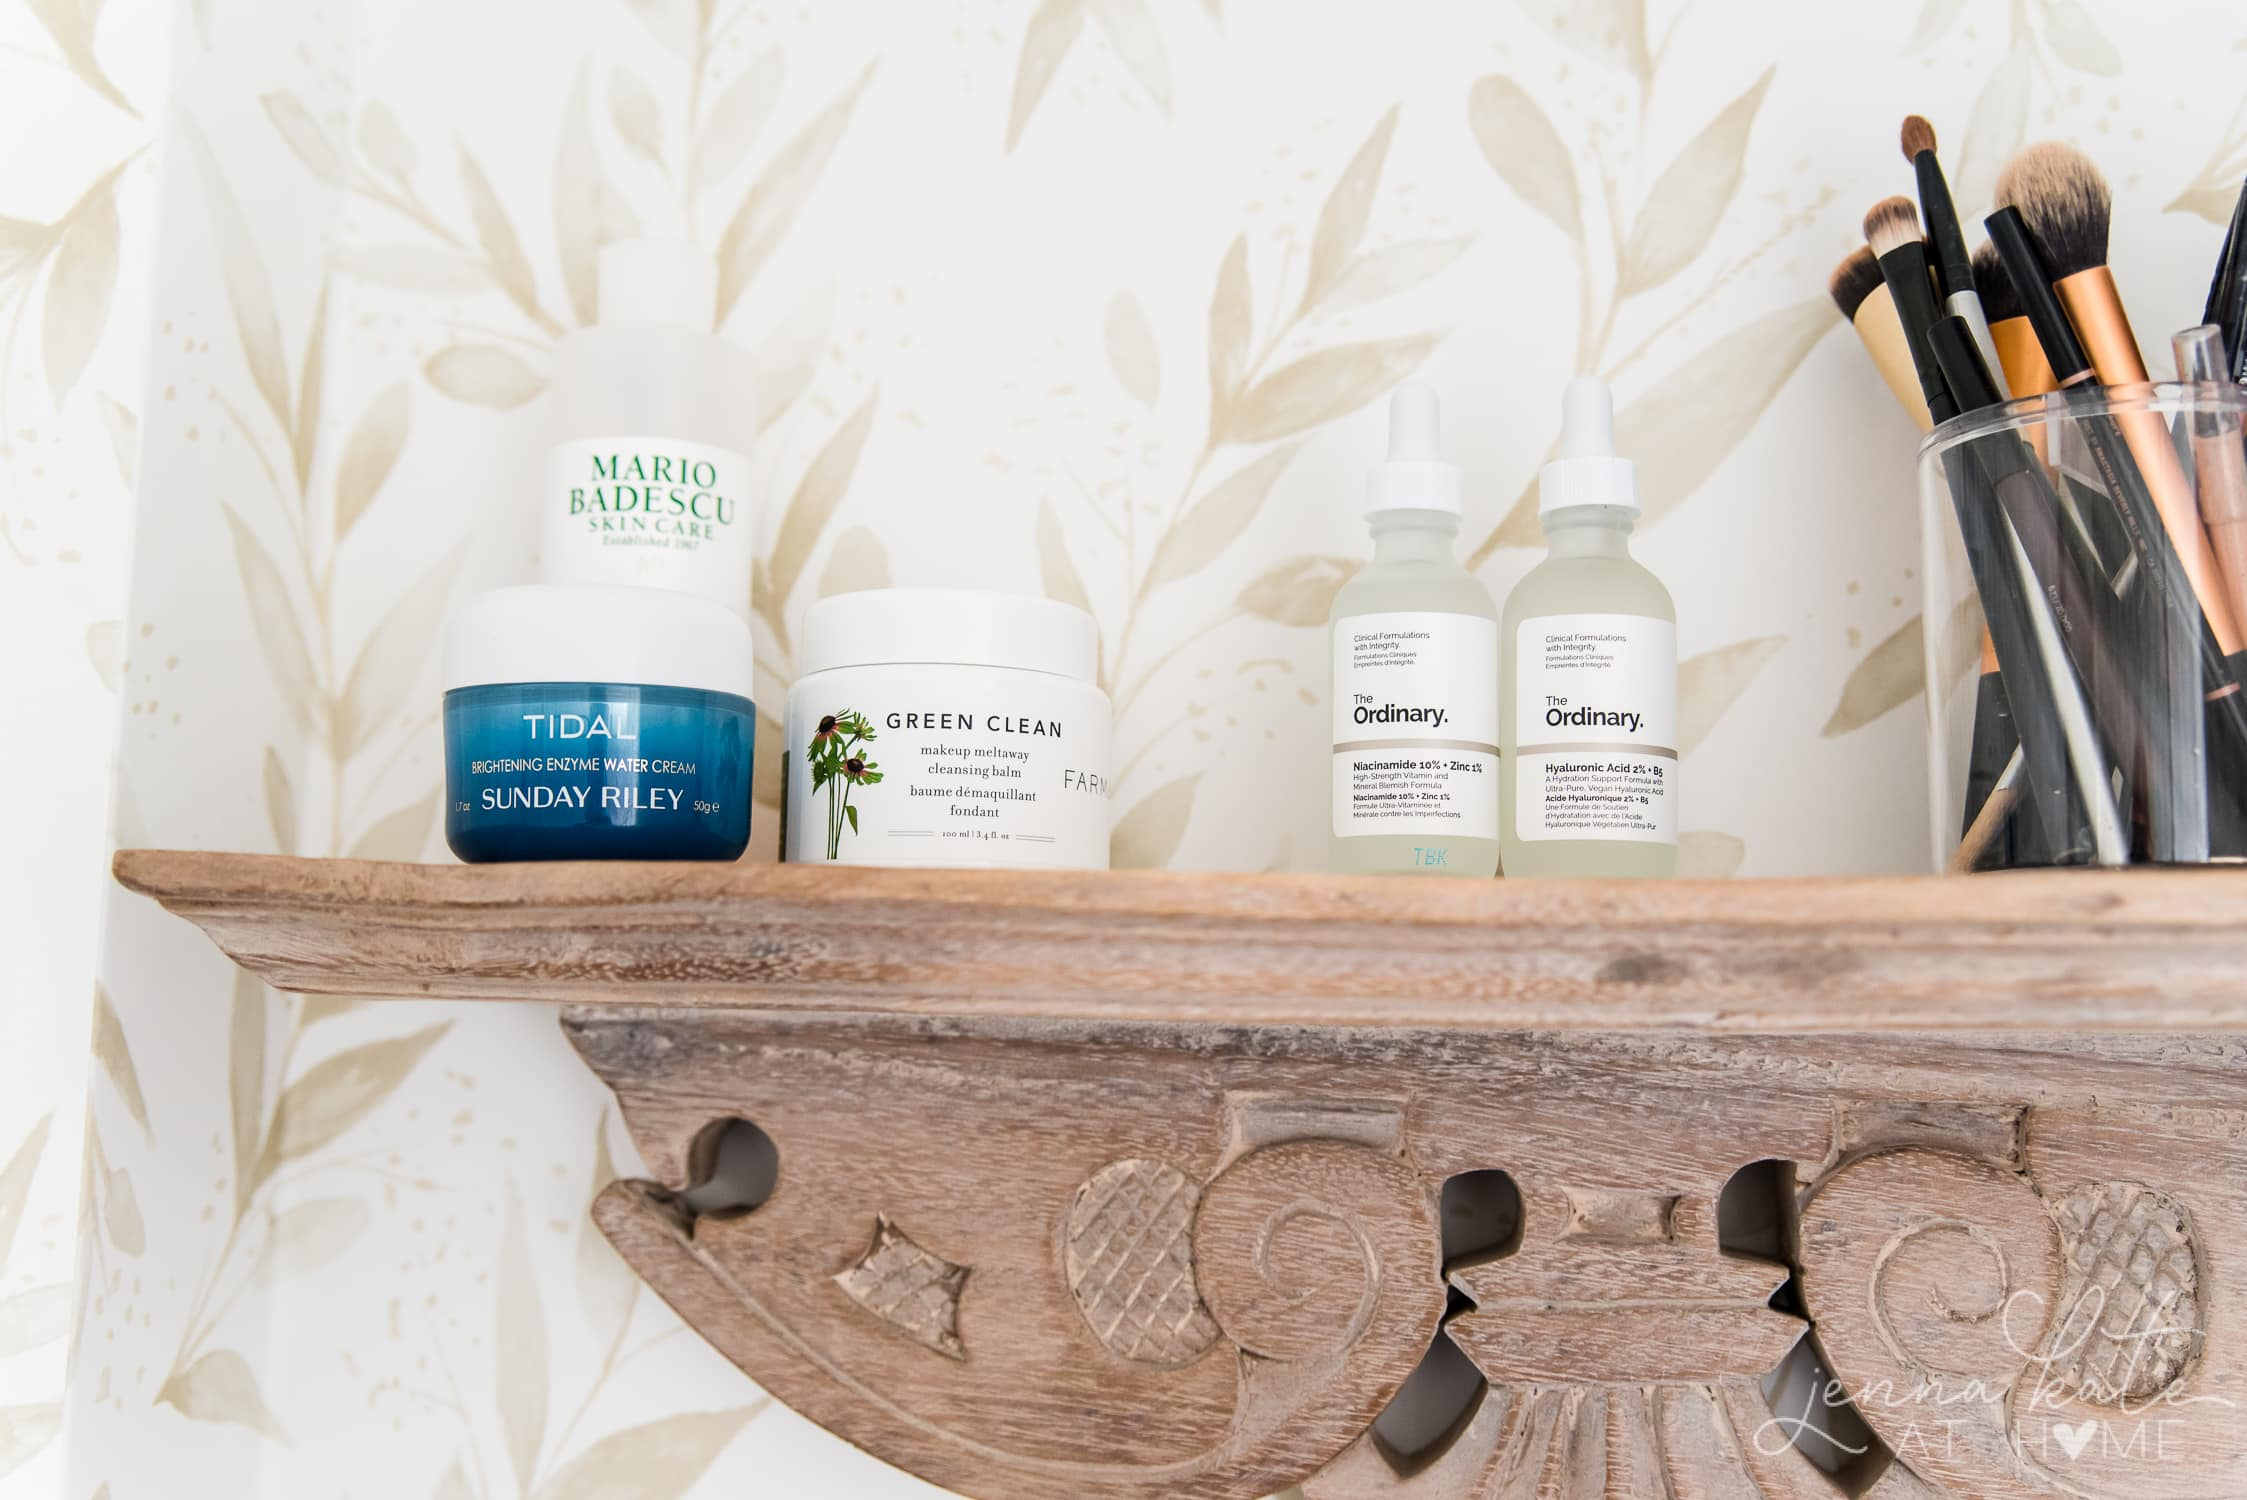 The best skincare products - tidal by sunday riley, green clean makeup remover and serums from the ordinary